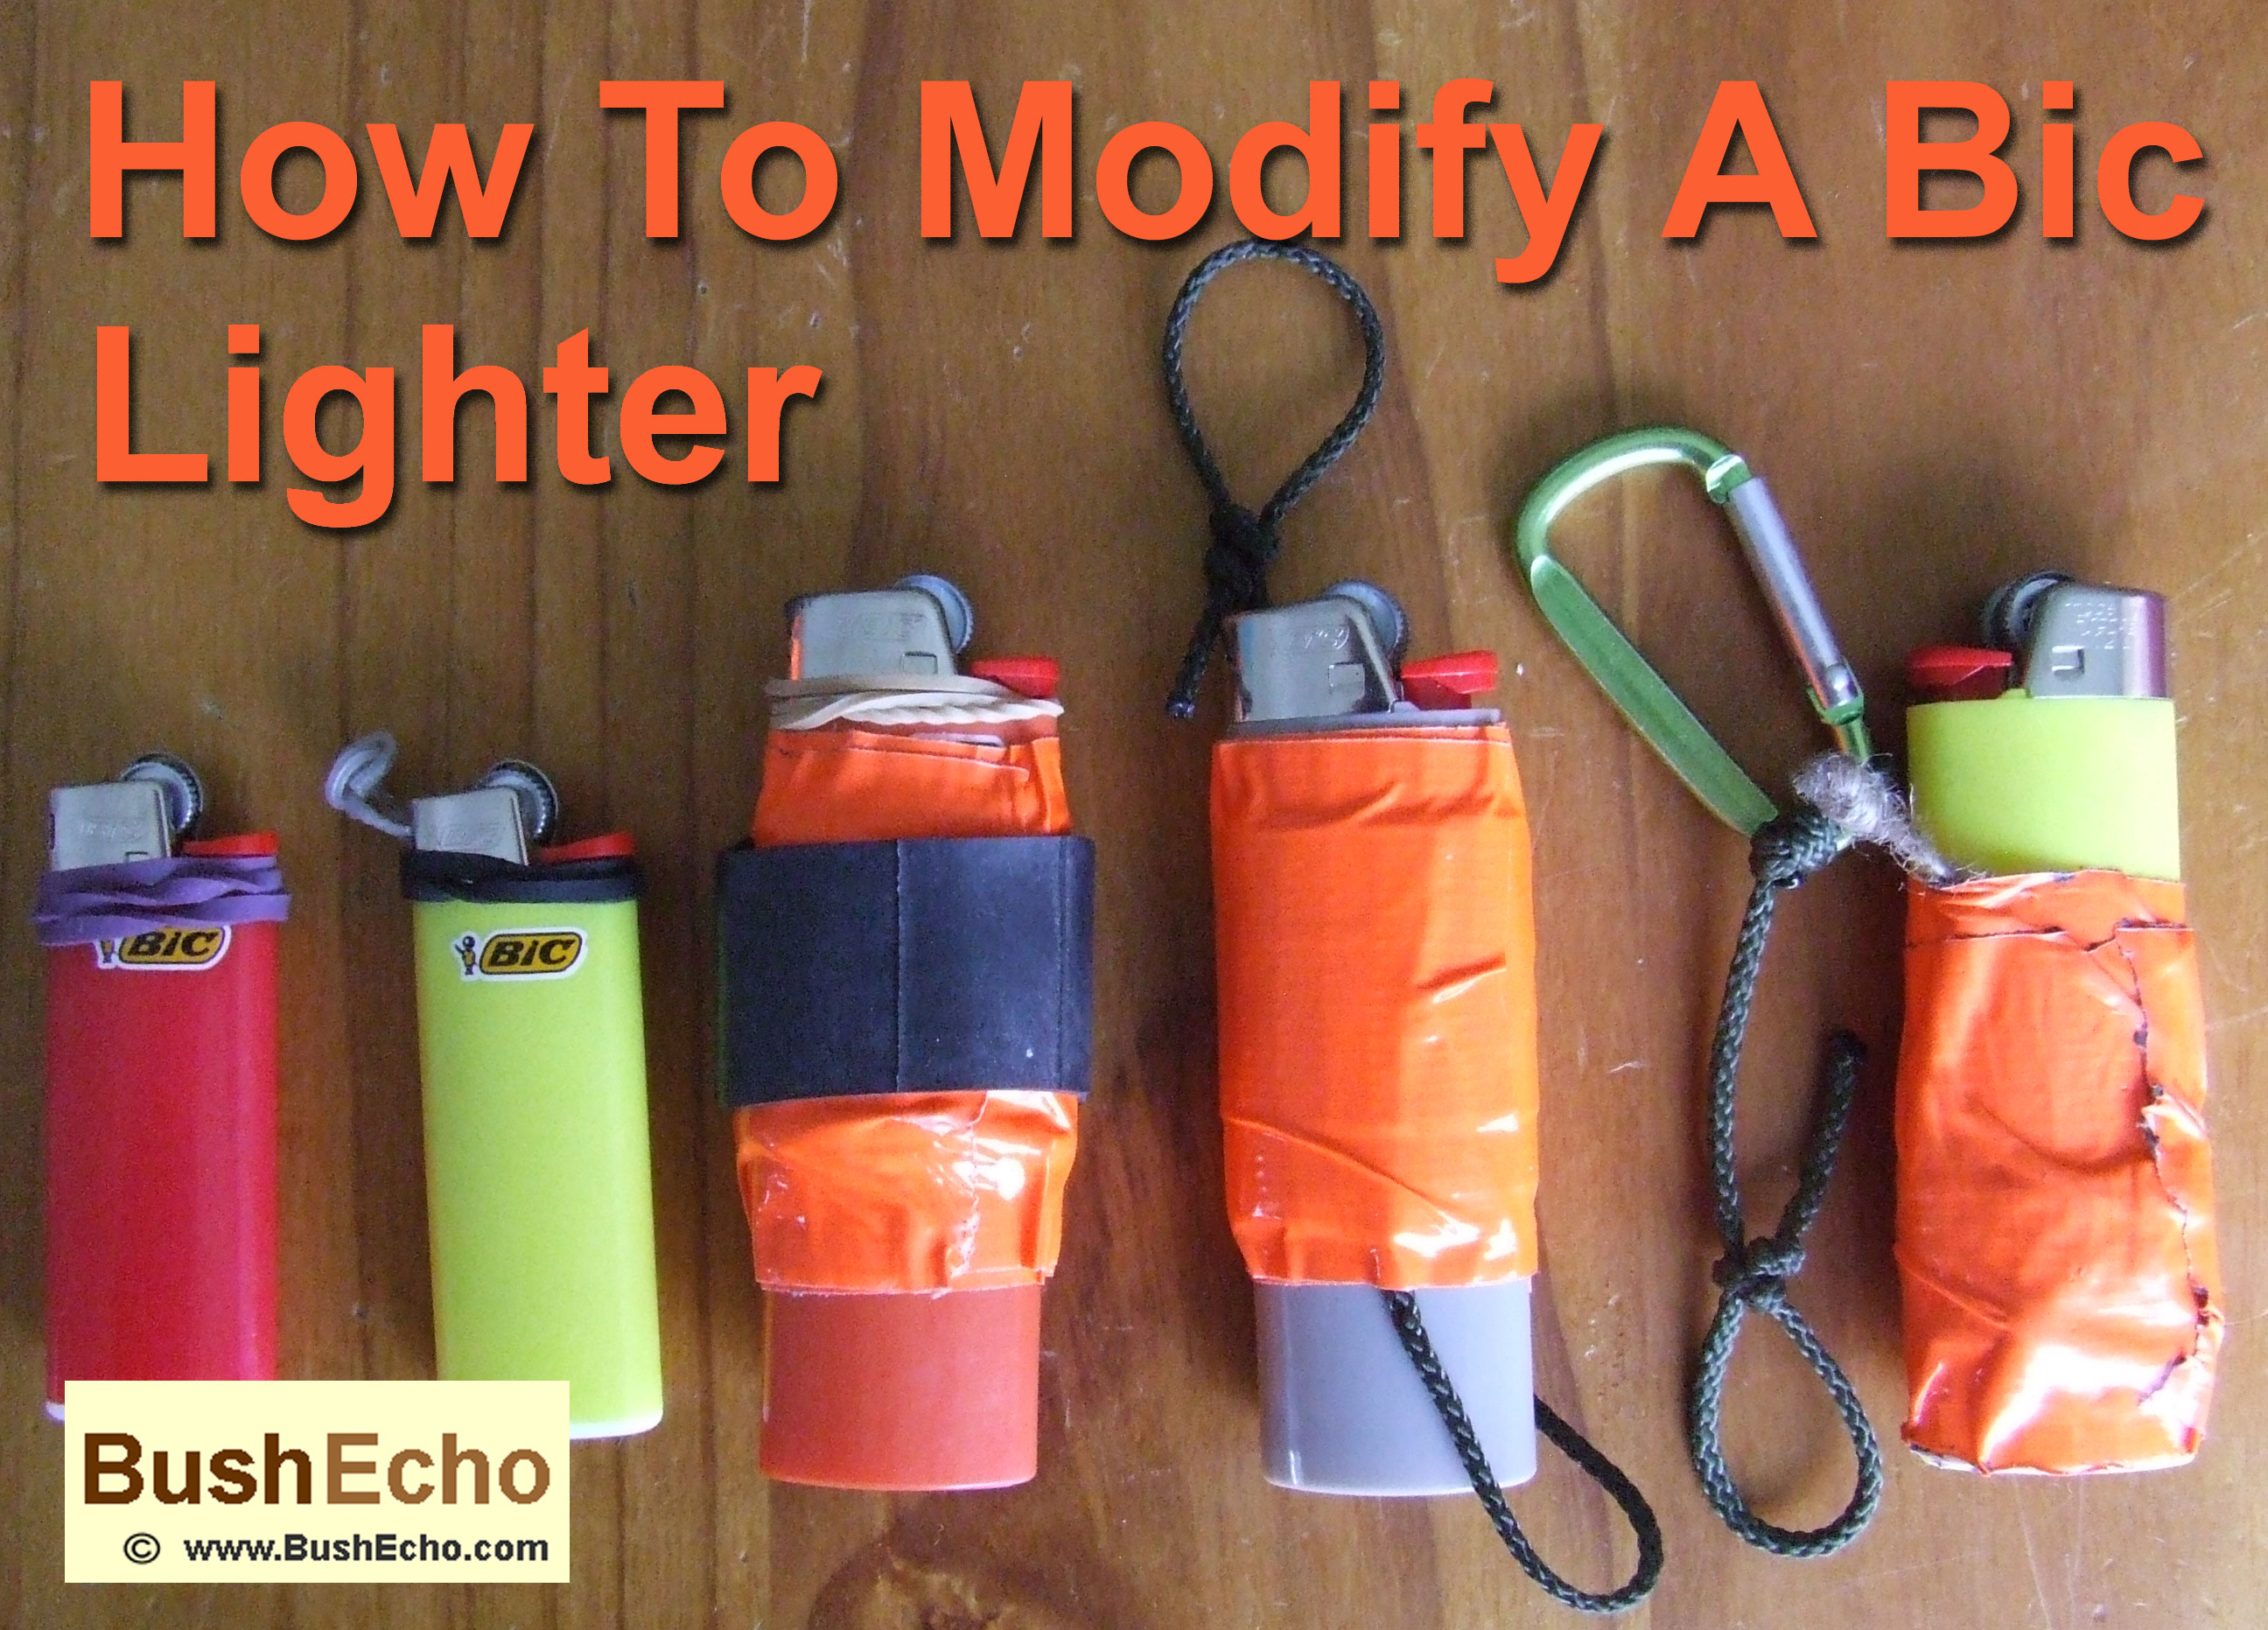 How to modify a Bic lighter